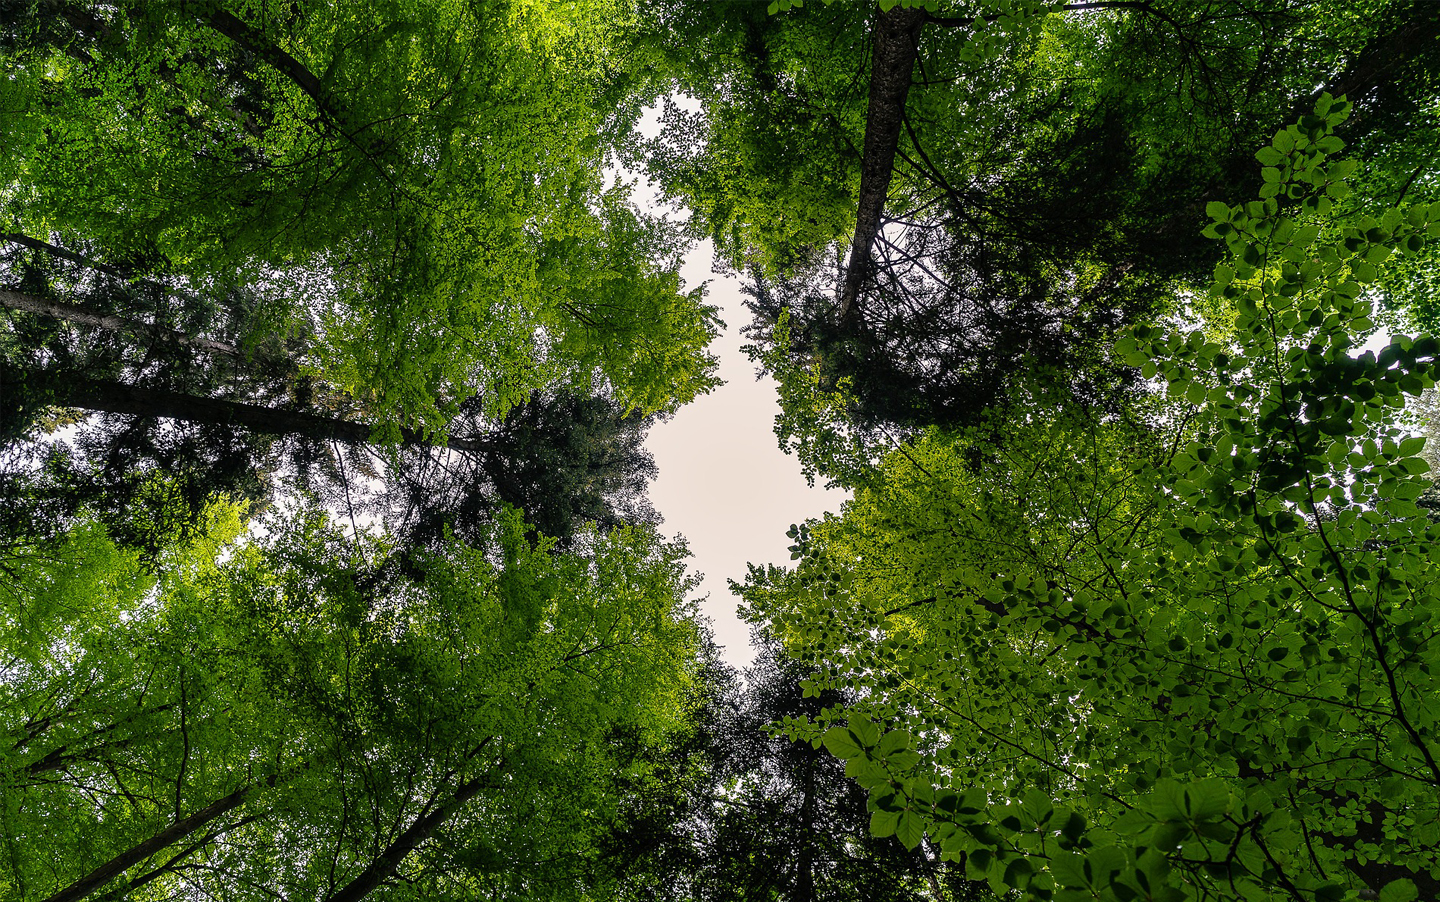 Looking through the leaves of tree canopy